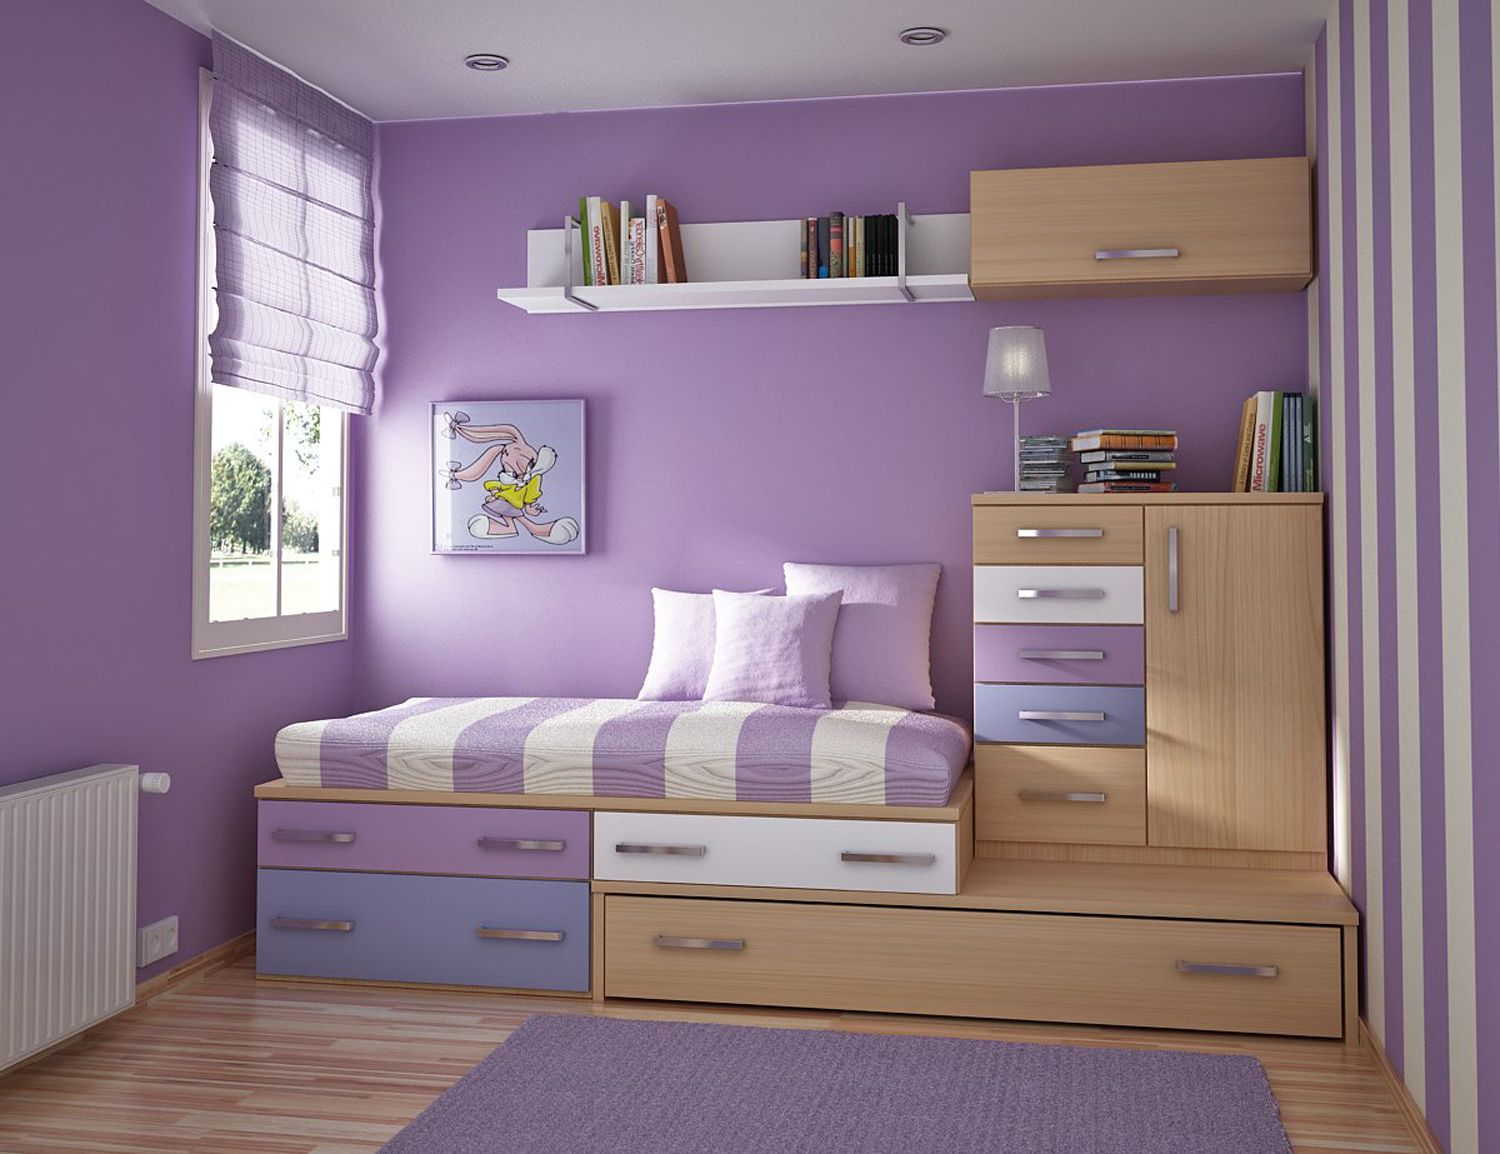 Charmant Amazing Purple Kids Bedroom Furniture Sets For Children Kids Bedroom Design  For Children 1500x1154